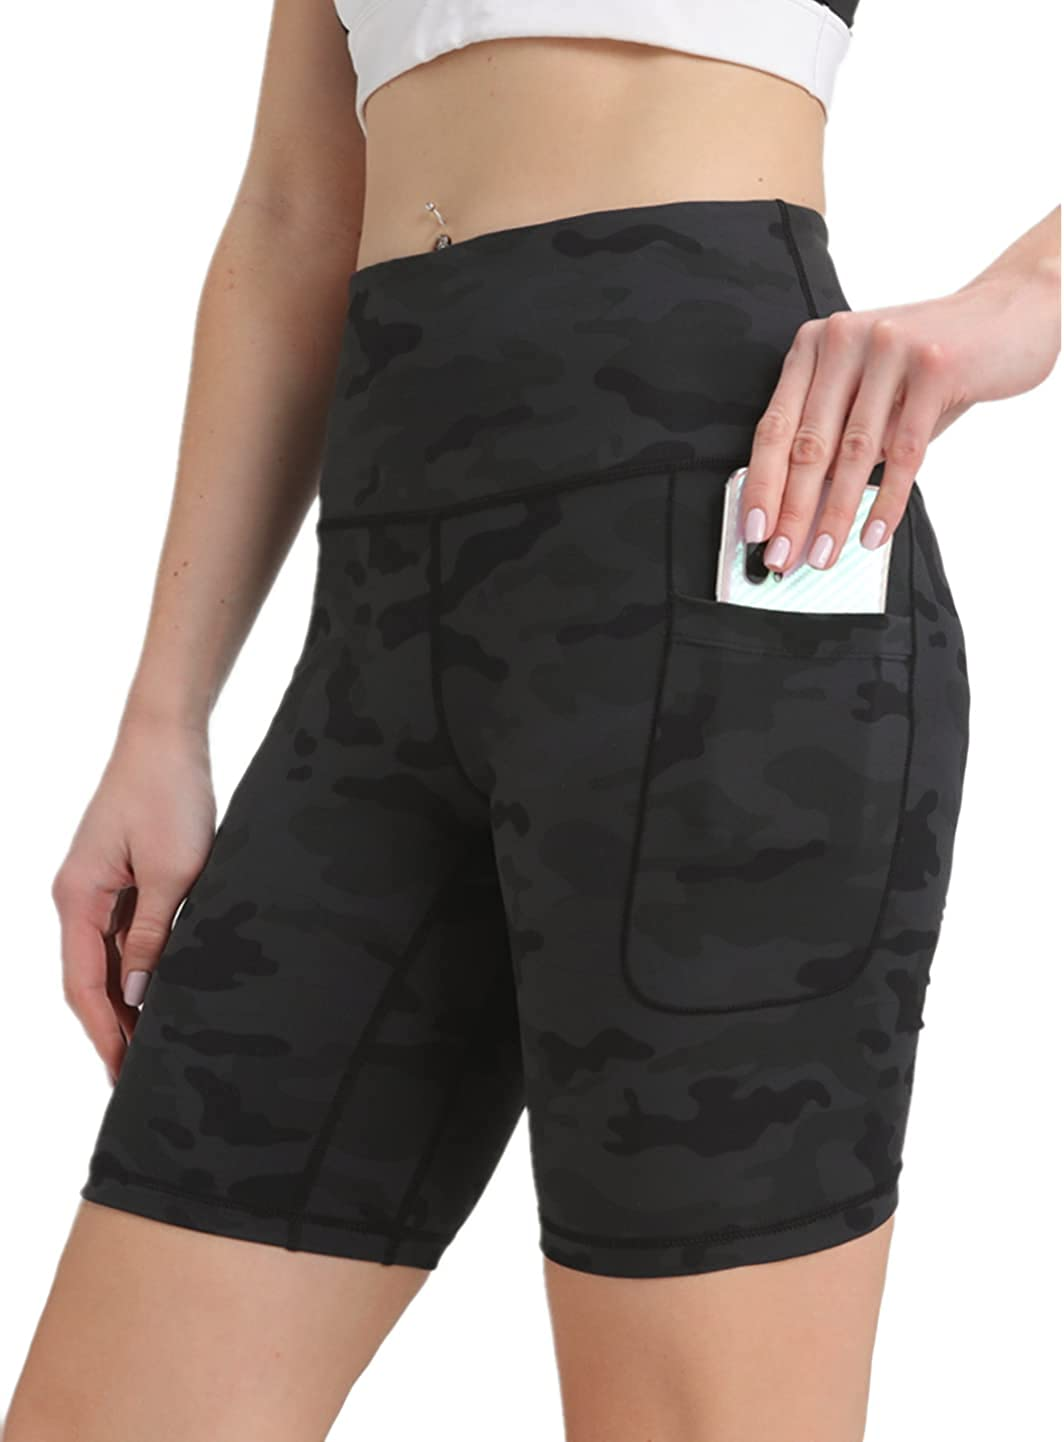 FETY Women's High Waist Yoga Shorts Biker Workout Shorts Running Athletic Short with 2 Pockets Tommy Control